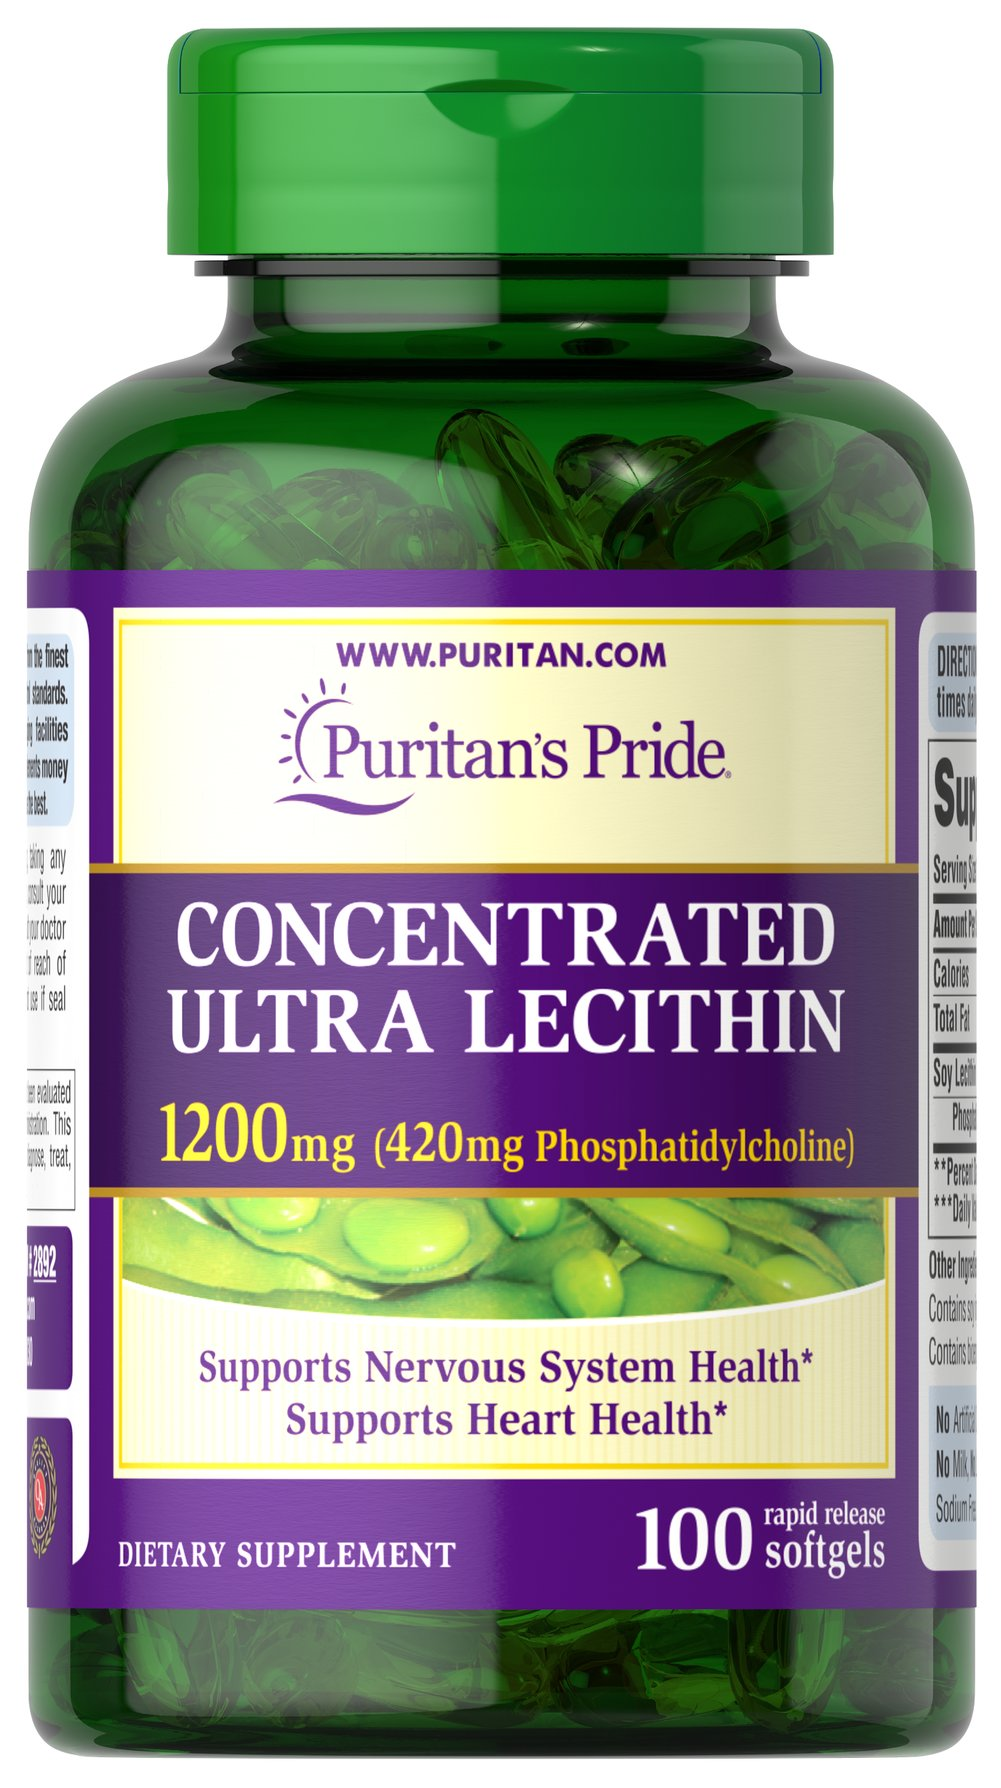 Concentrated Ultra Lecithin 1200 mg  100 Rapid Release Softgels 1200 mg